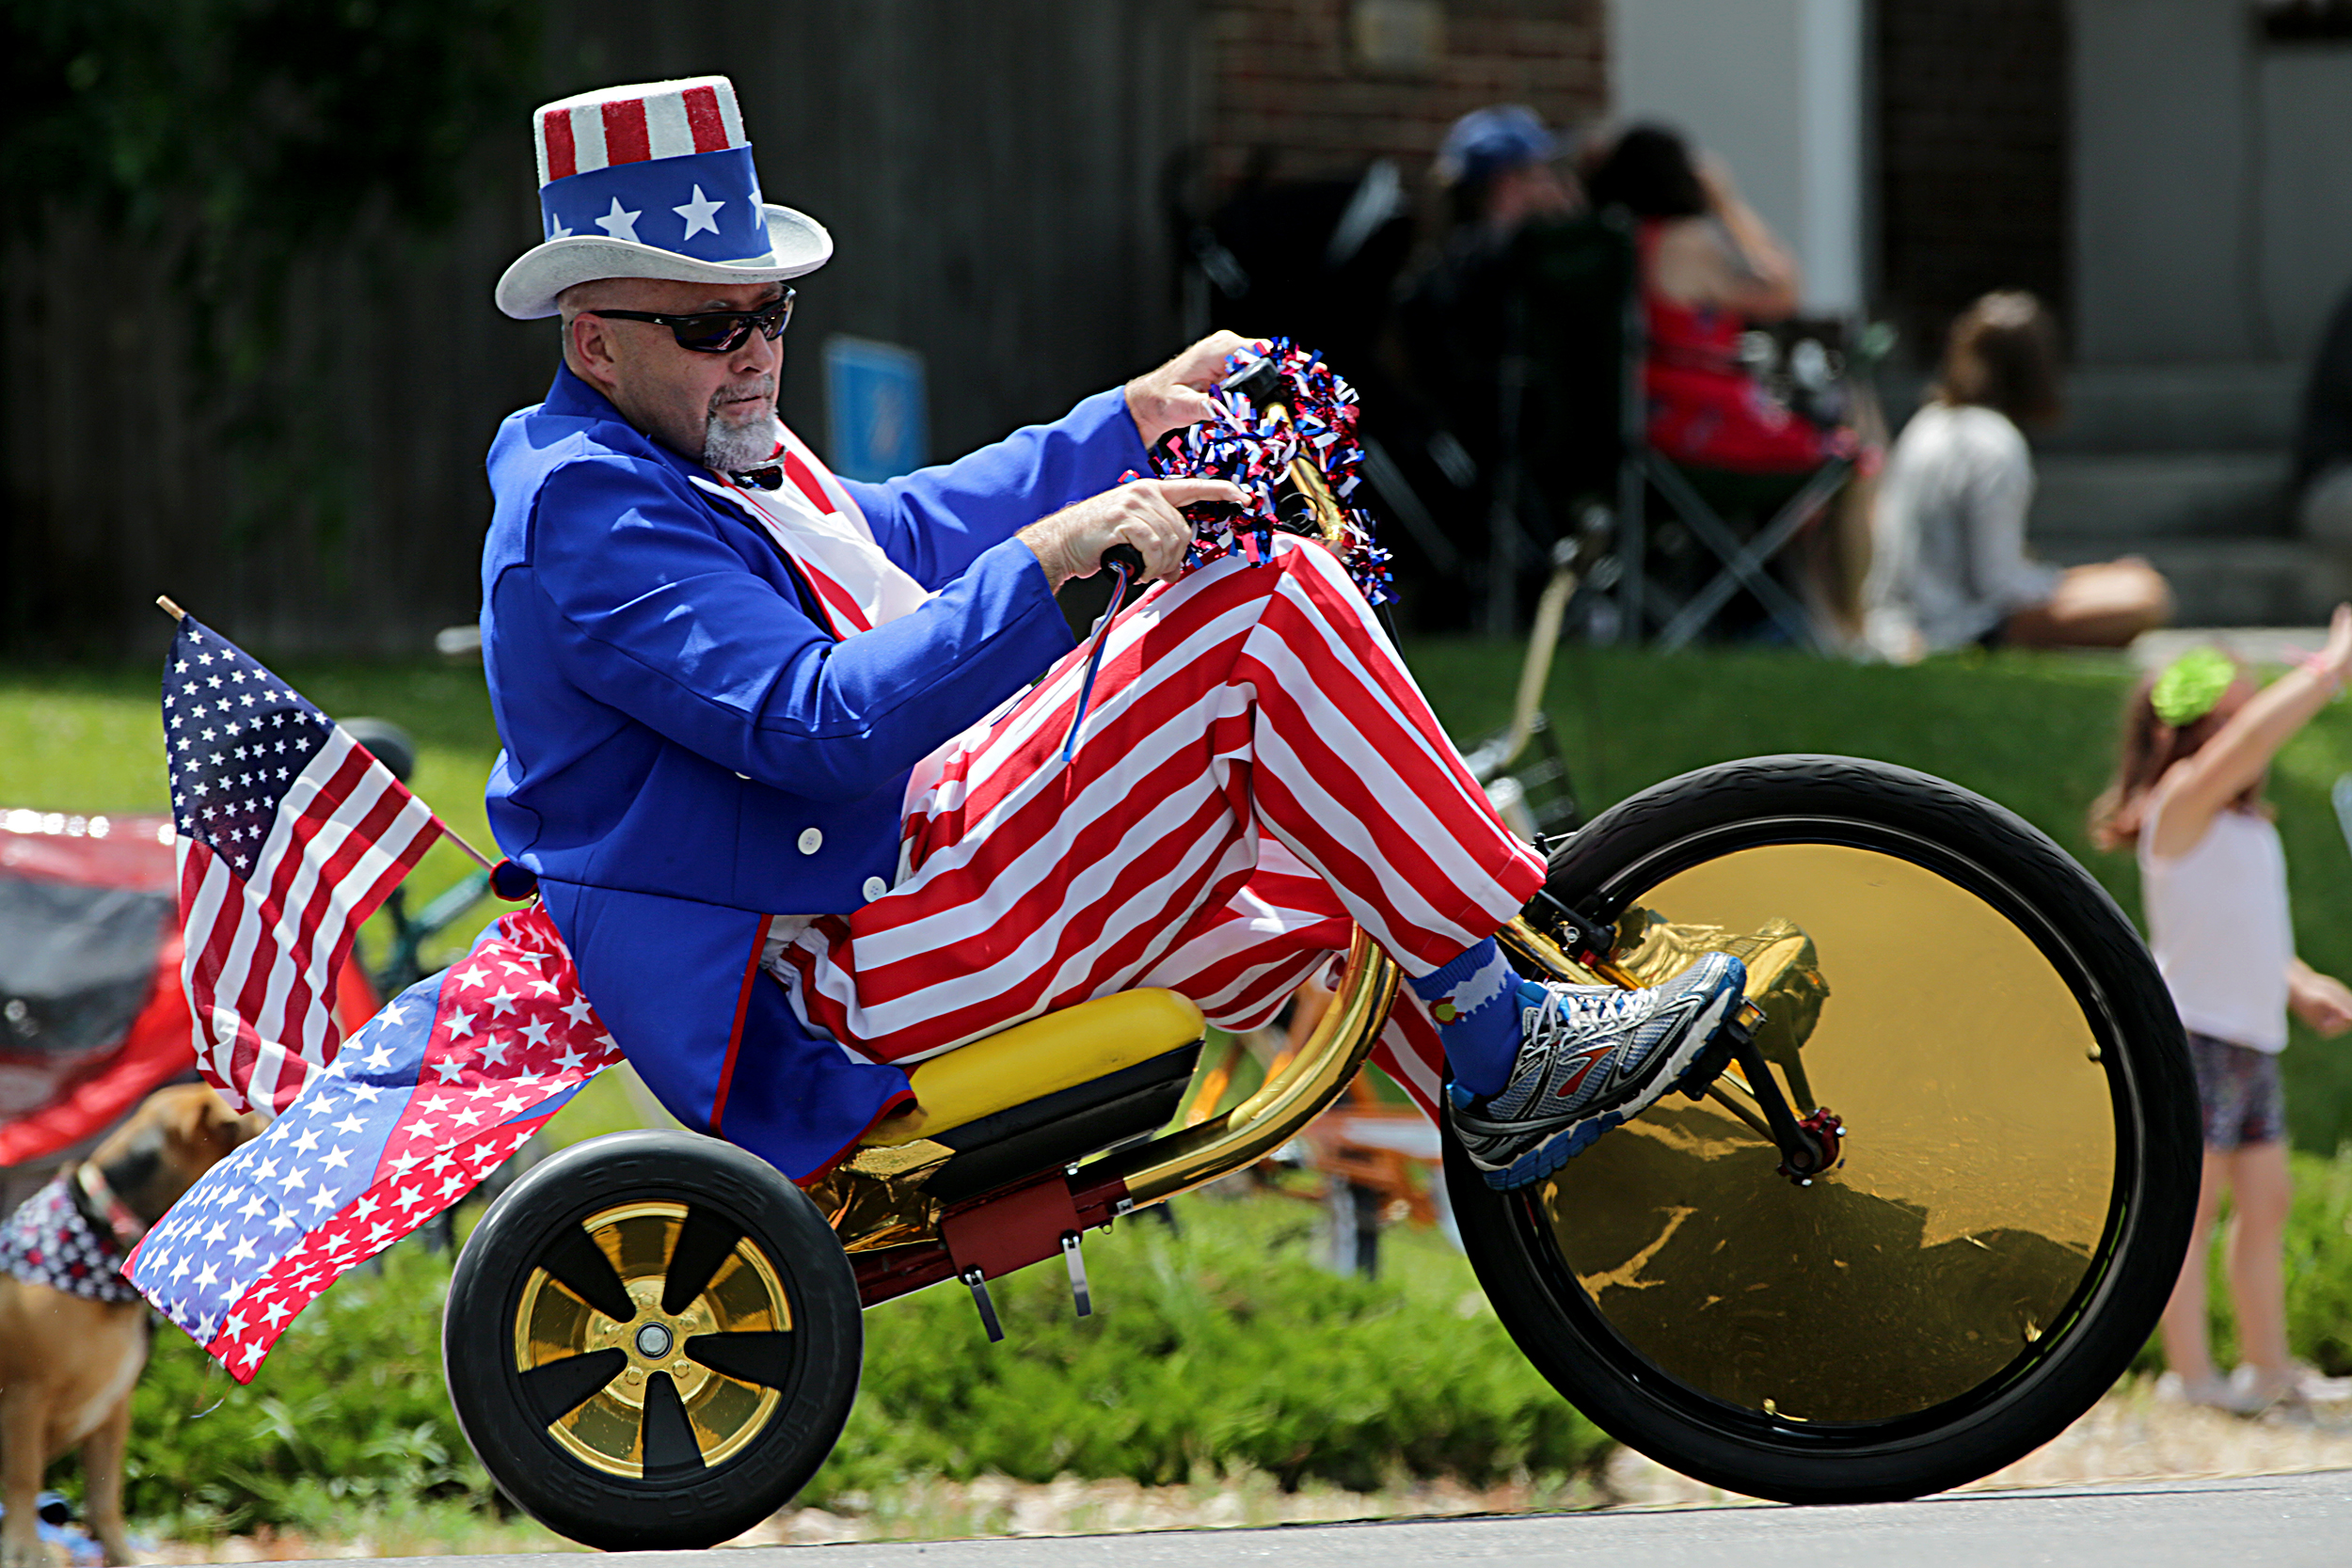 The Park Hill neighborhood in Denver hosts an old-school Independence Day parade every Fourth of July, with families crowding the route up 23rd Avenue east of City Park. Uncle Sam showed up on a Big Wheel. We note the Colorado socks.